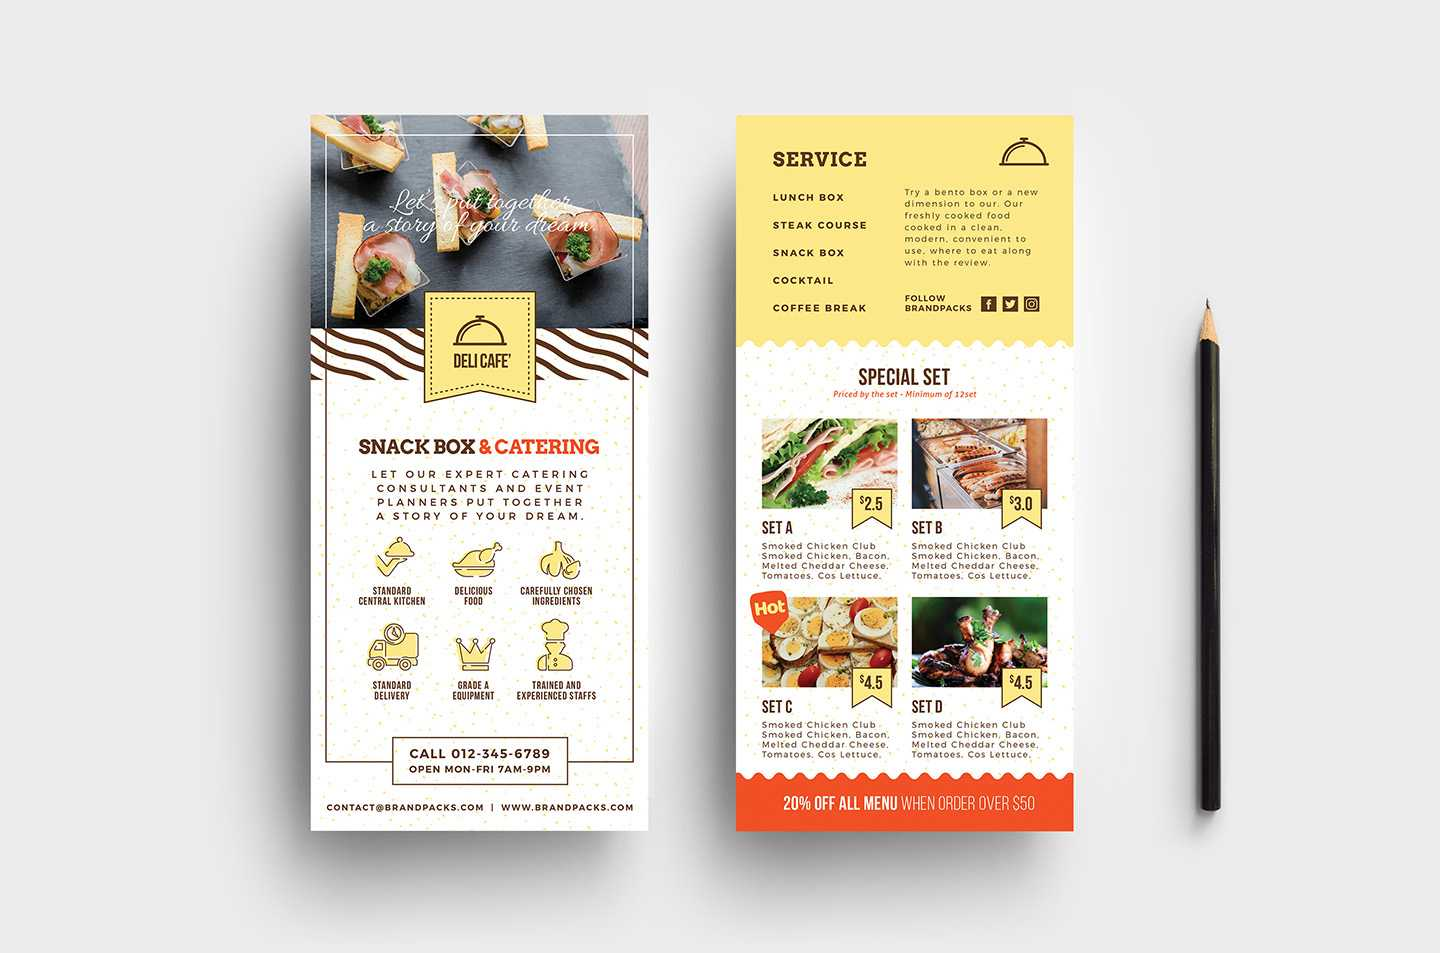 Catering Service Dl Card Template - Psd, Ai & Vector Pertaining To Dl Card Template